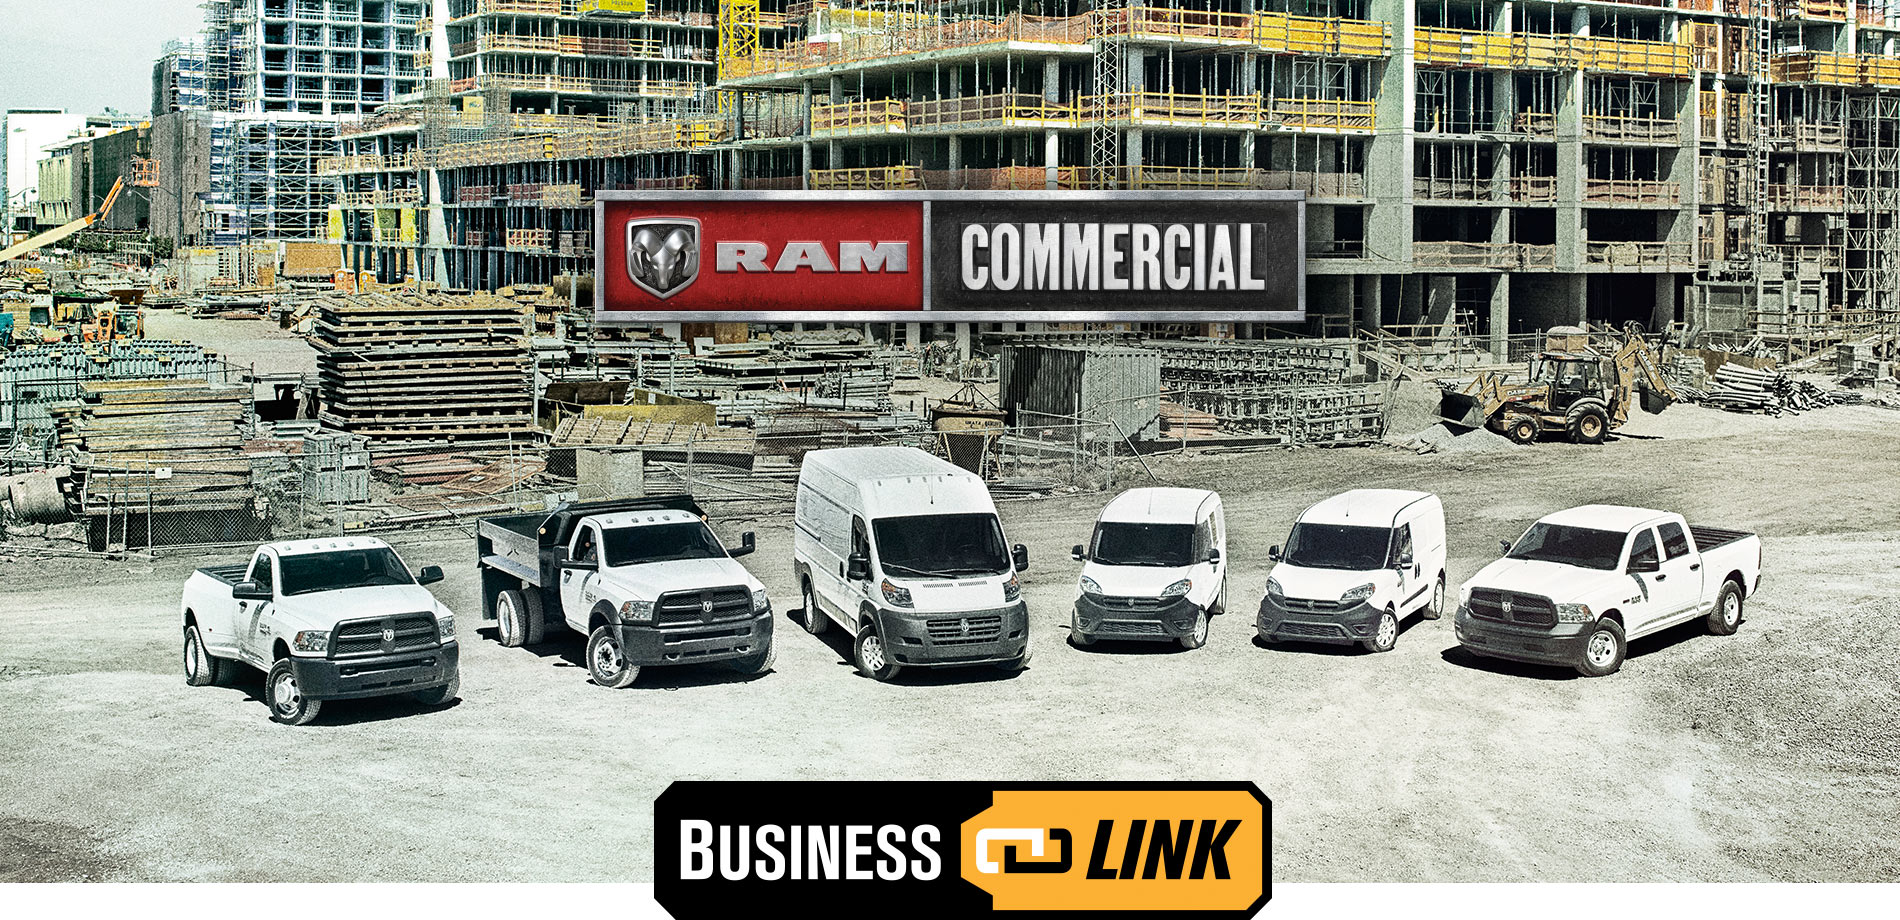 Ram Commercial Vehicle Banner